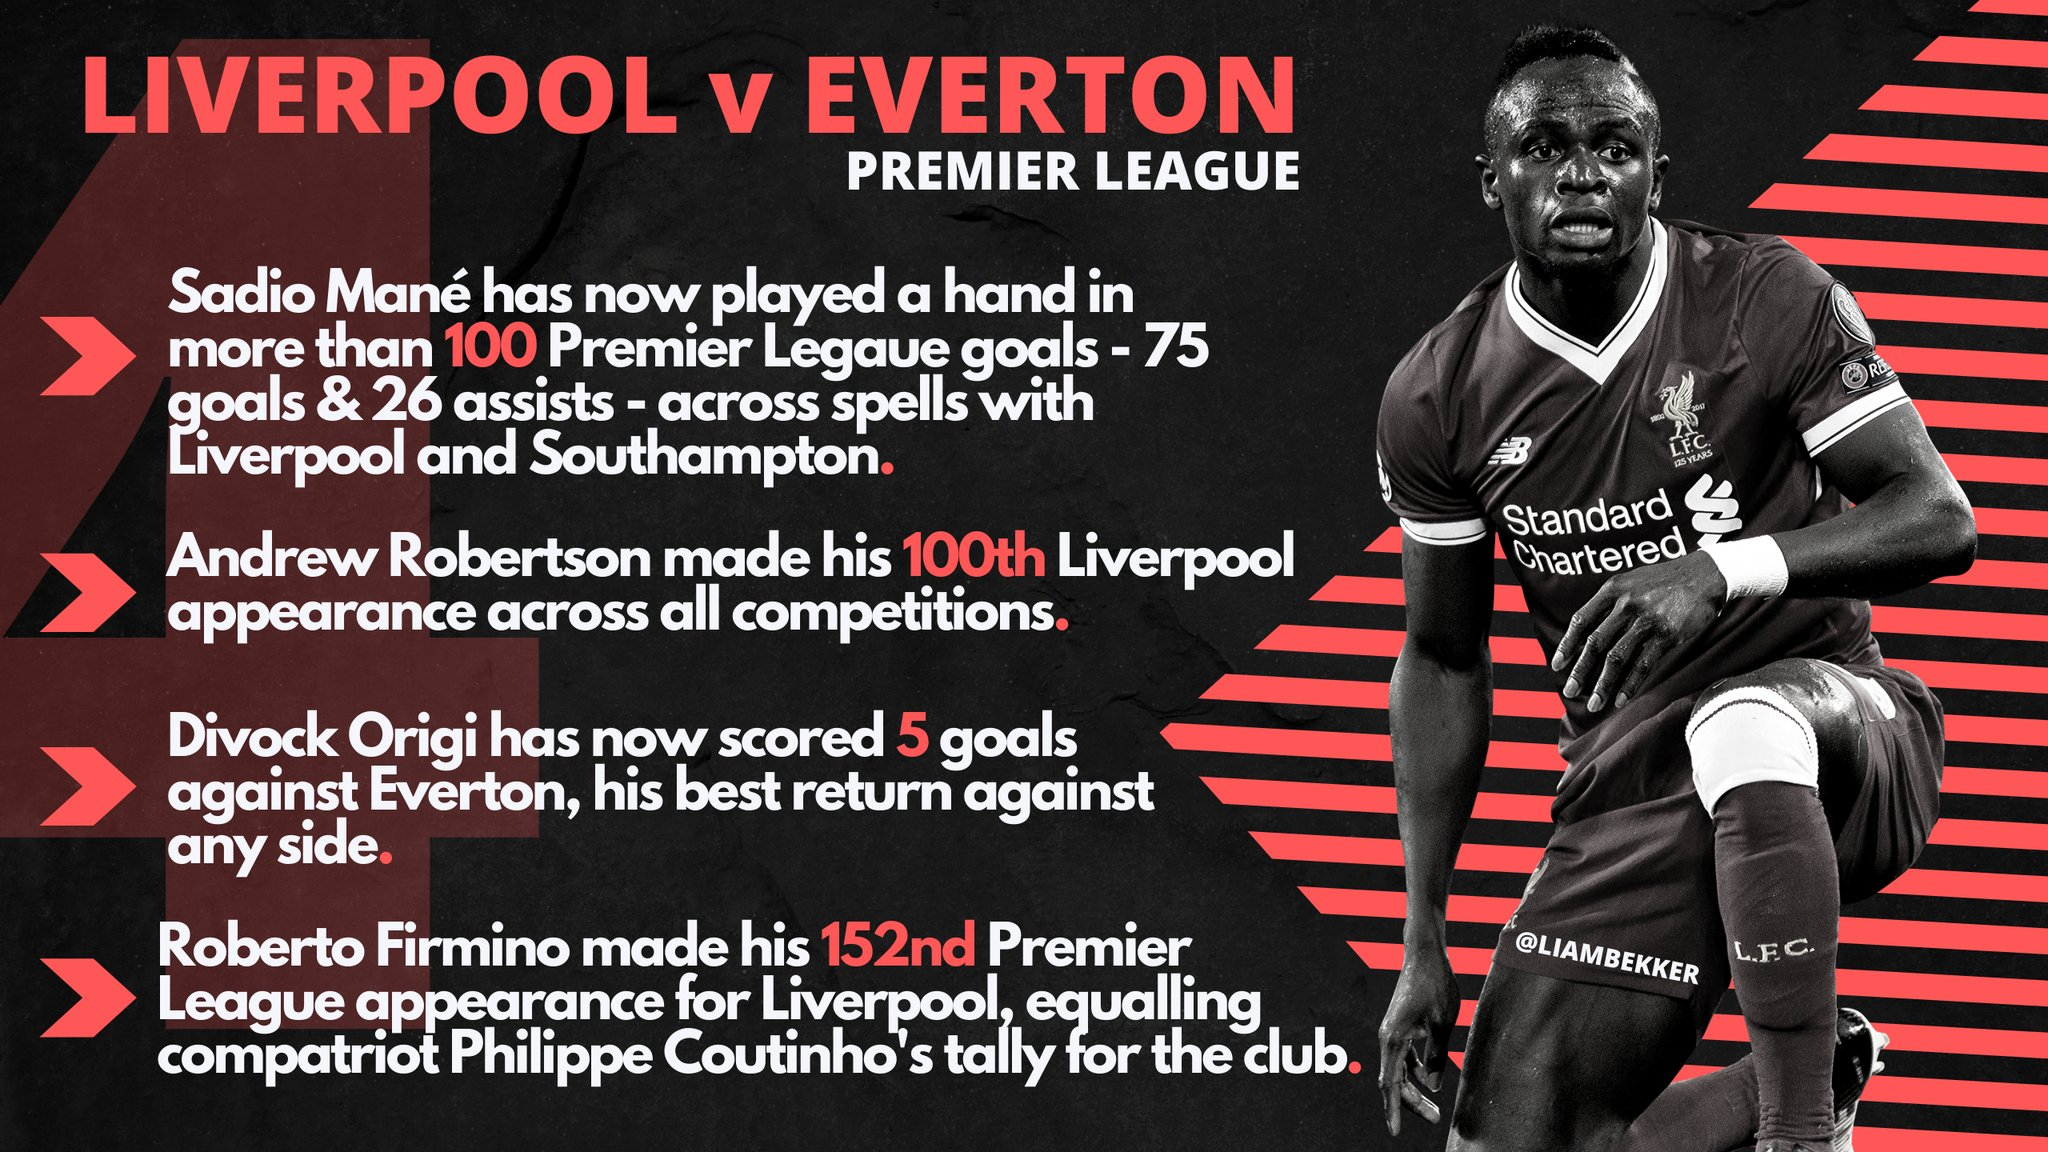 🔻 Post-match facts and stats from Liverpool's 5-2 win over Everton. #LFC https://t.co/8zcxvDbBIm